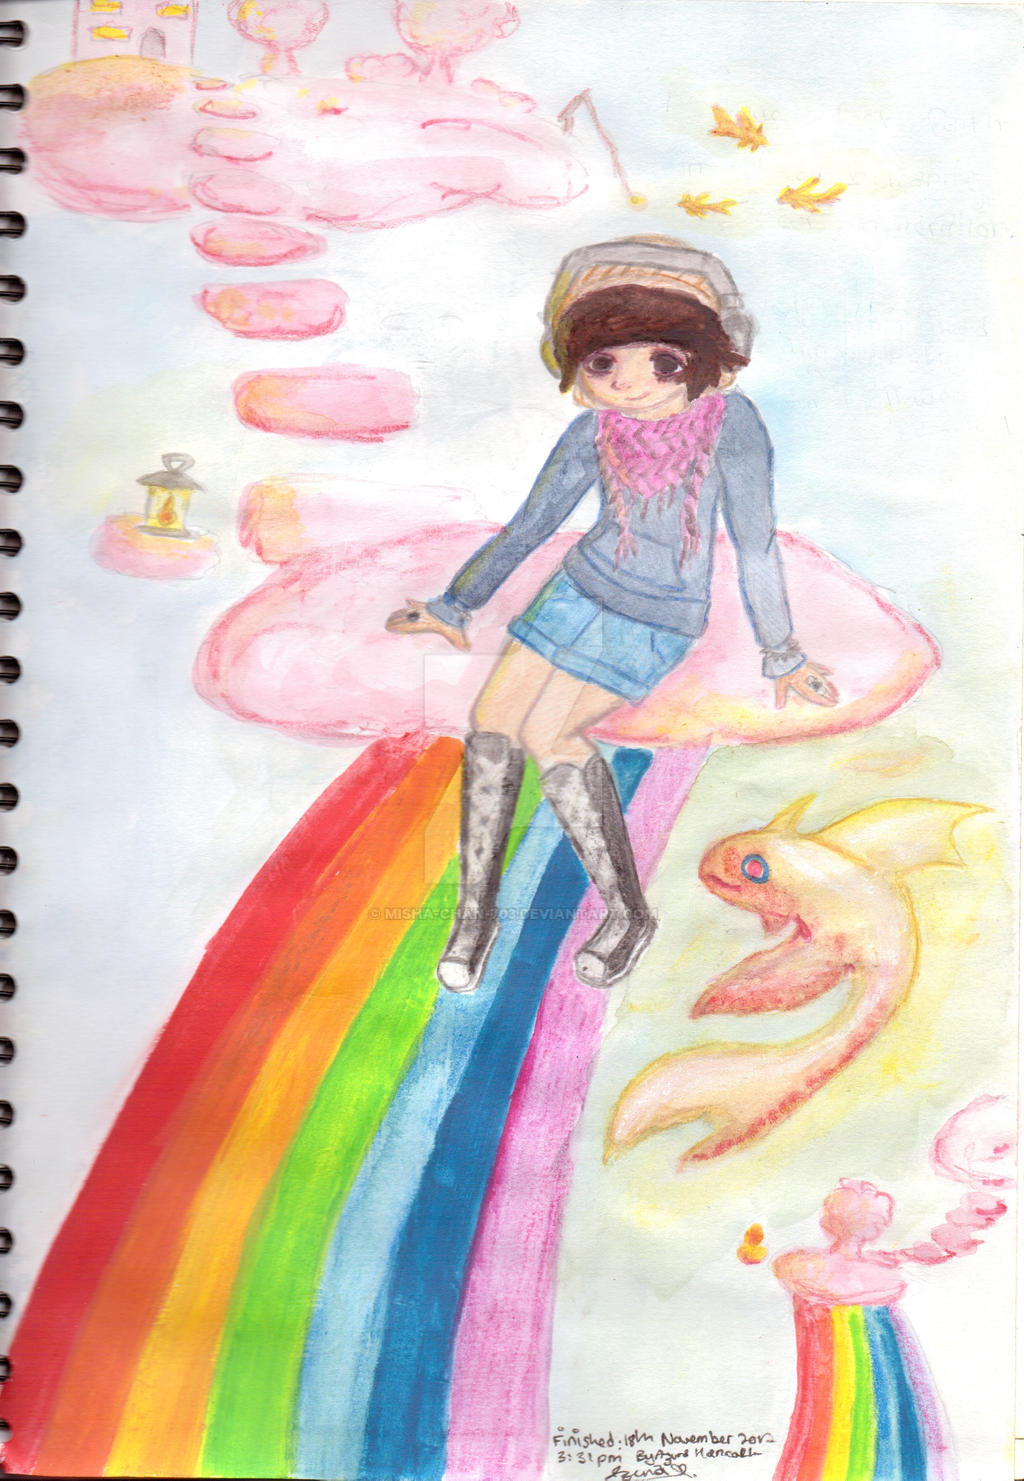 Rainbows, Glowing fish and Cotton Candy Clouds by Misha-chan-703